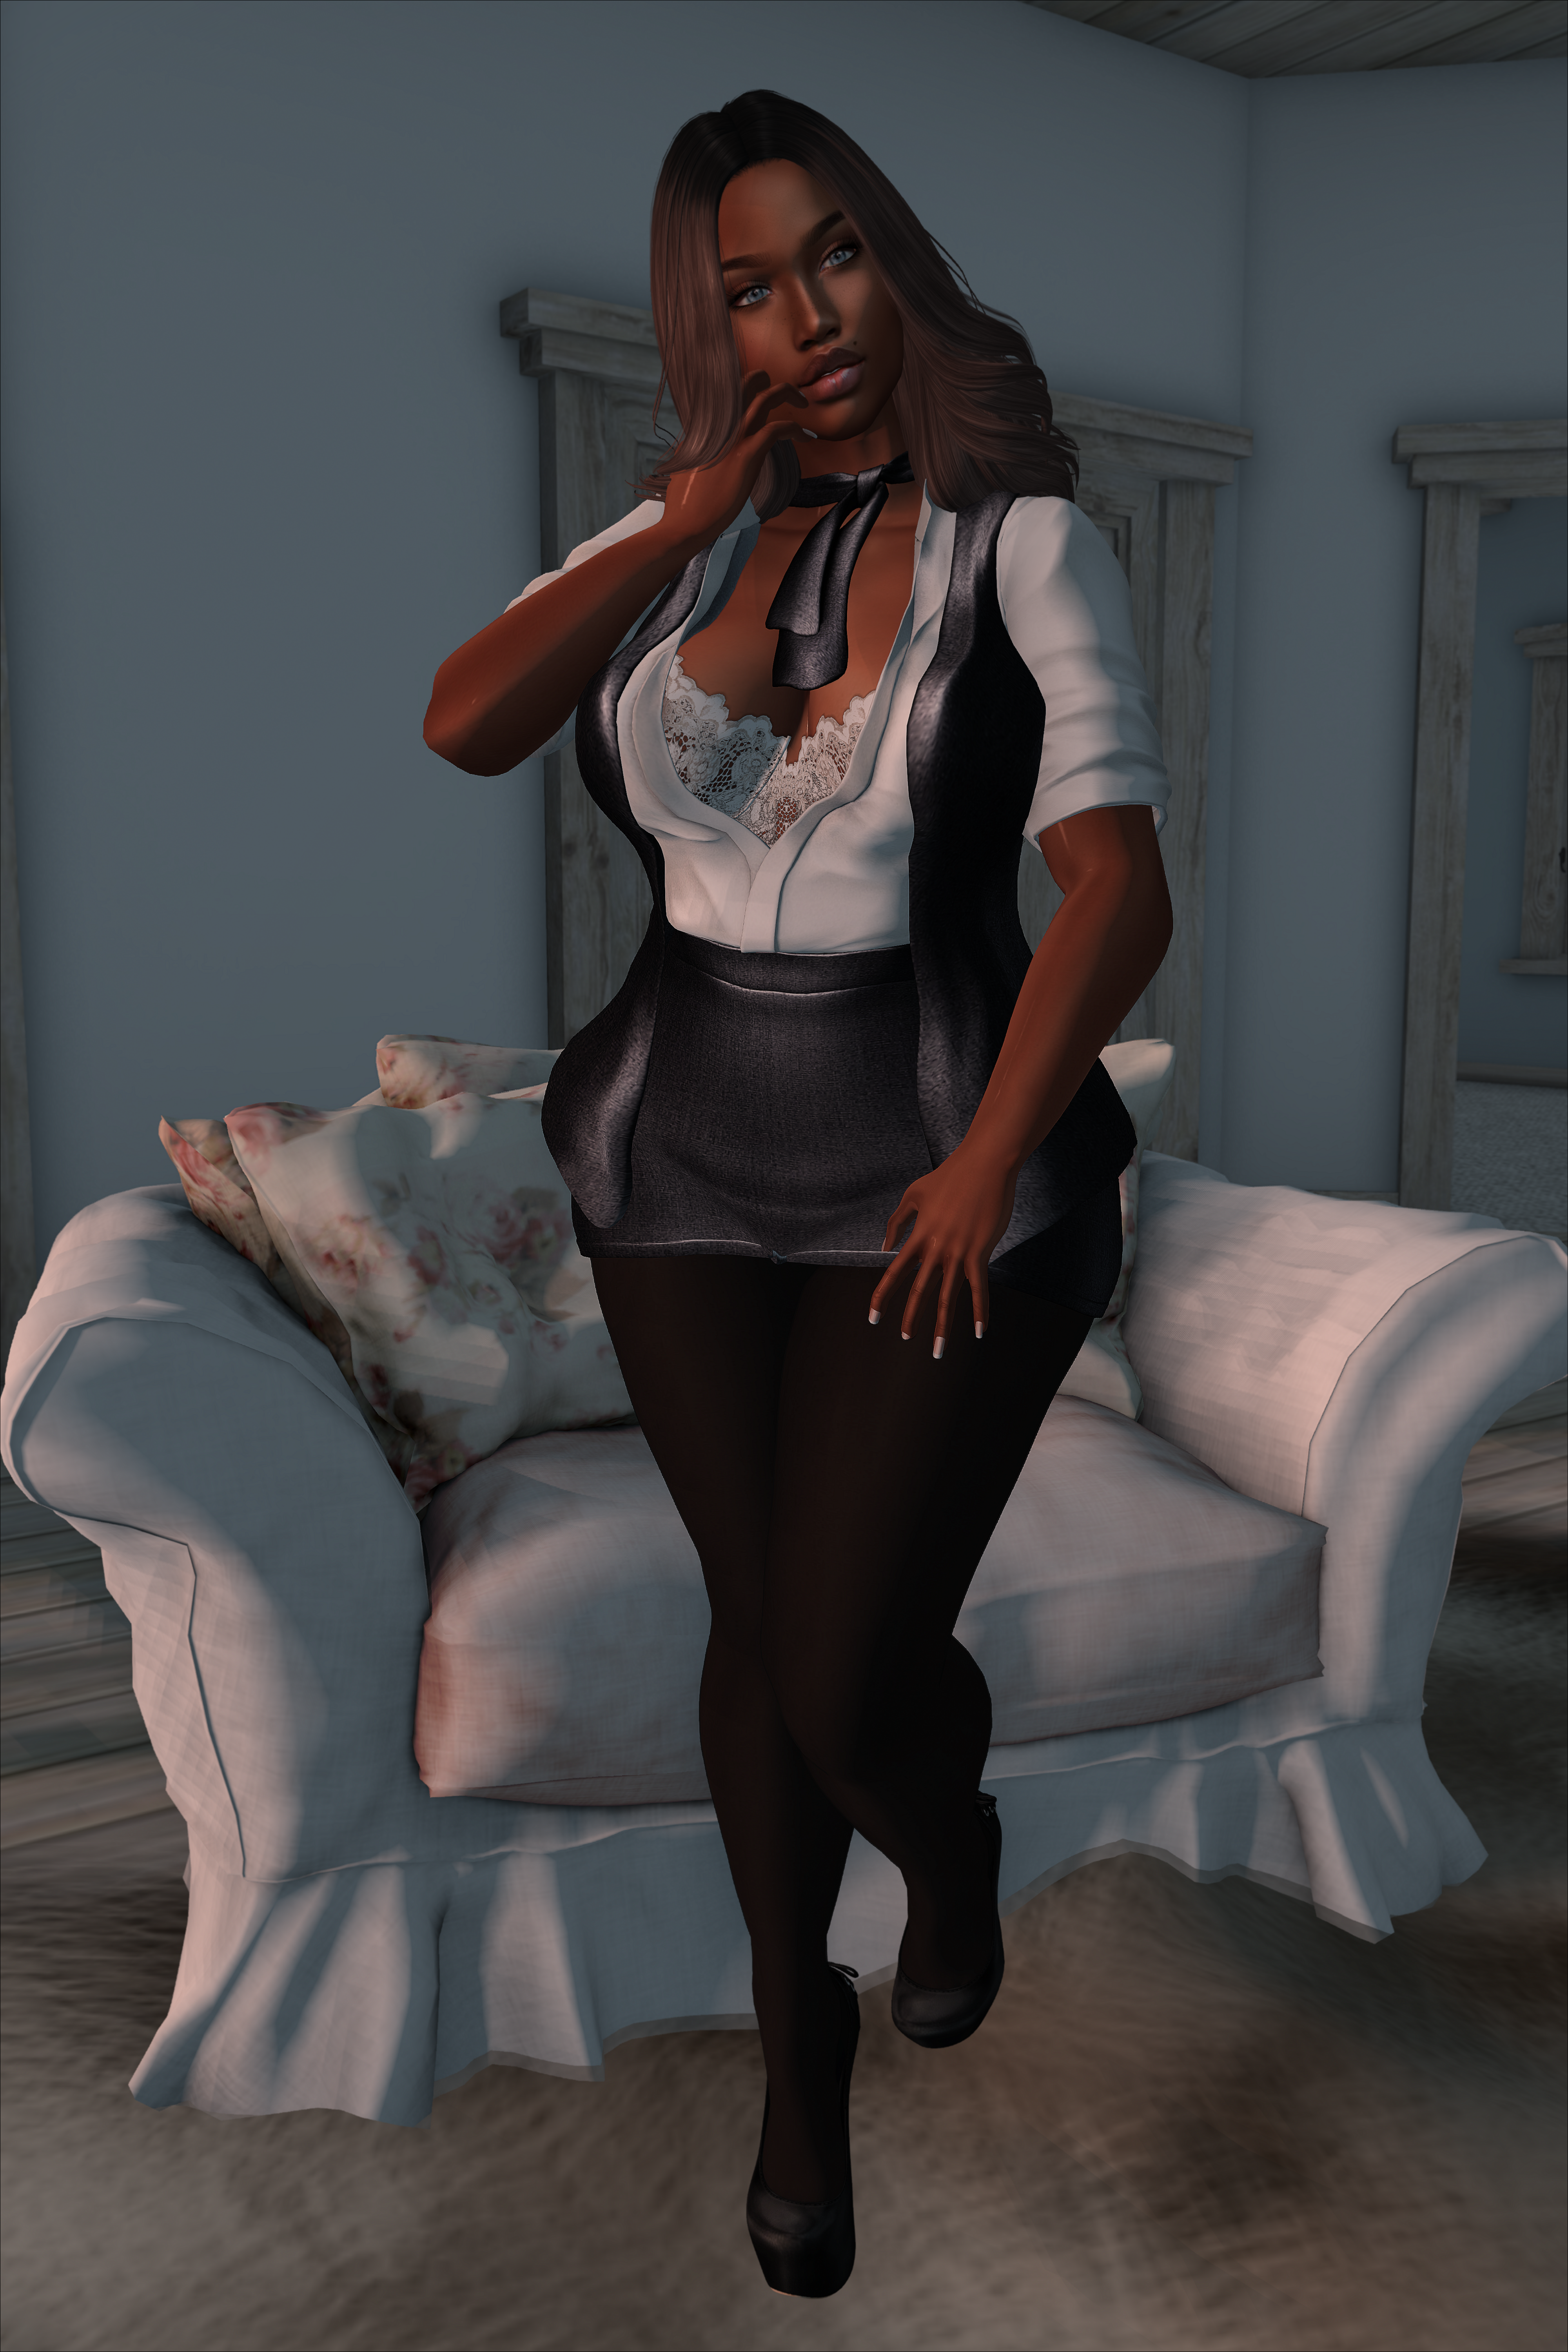 LOTD #11 // Baiastice Taylor Suit  #Fameshed February Round